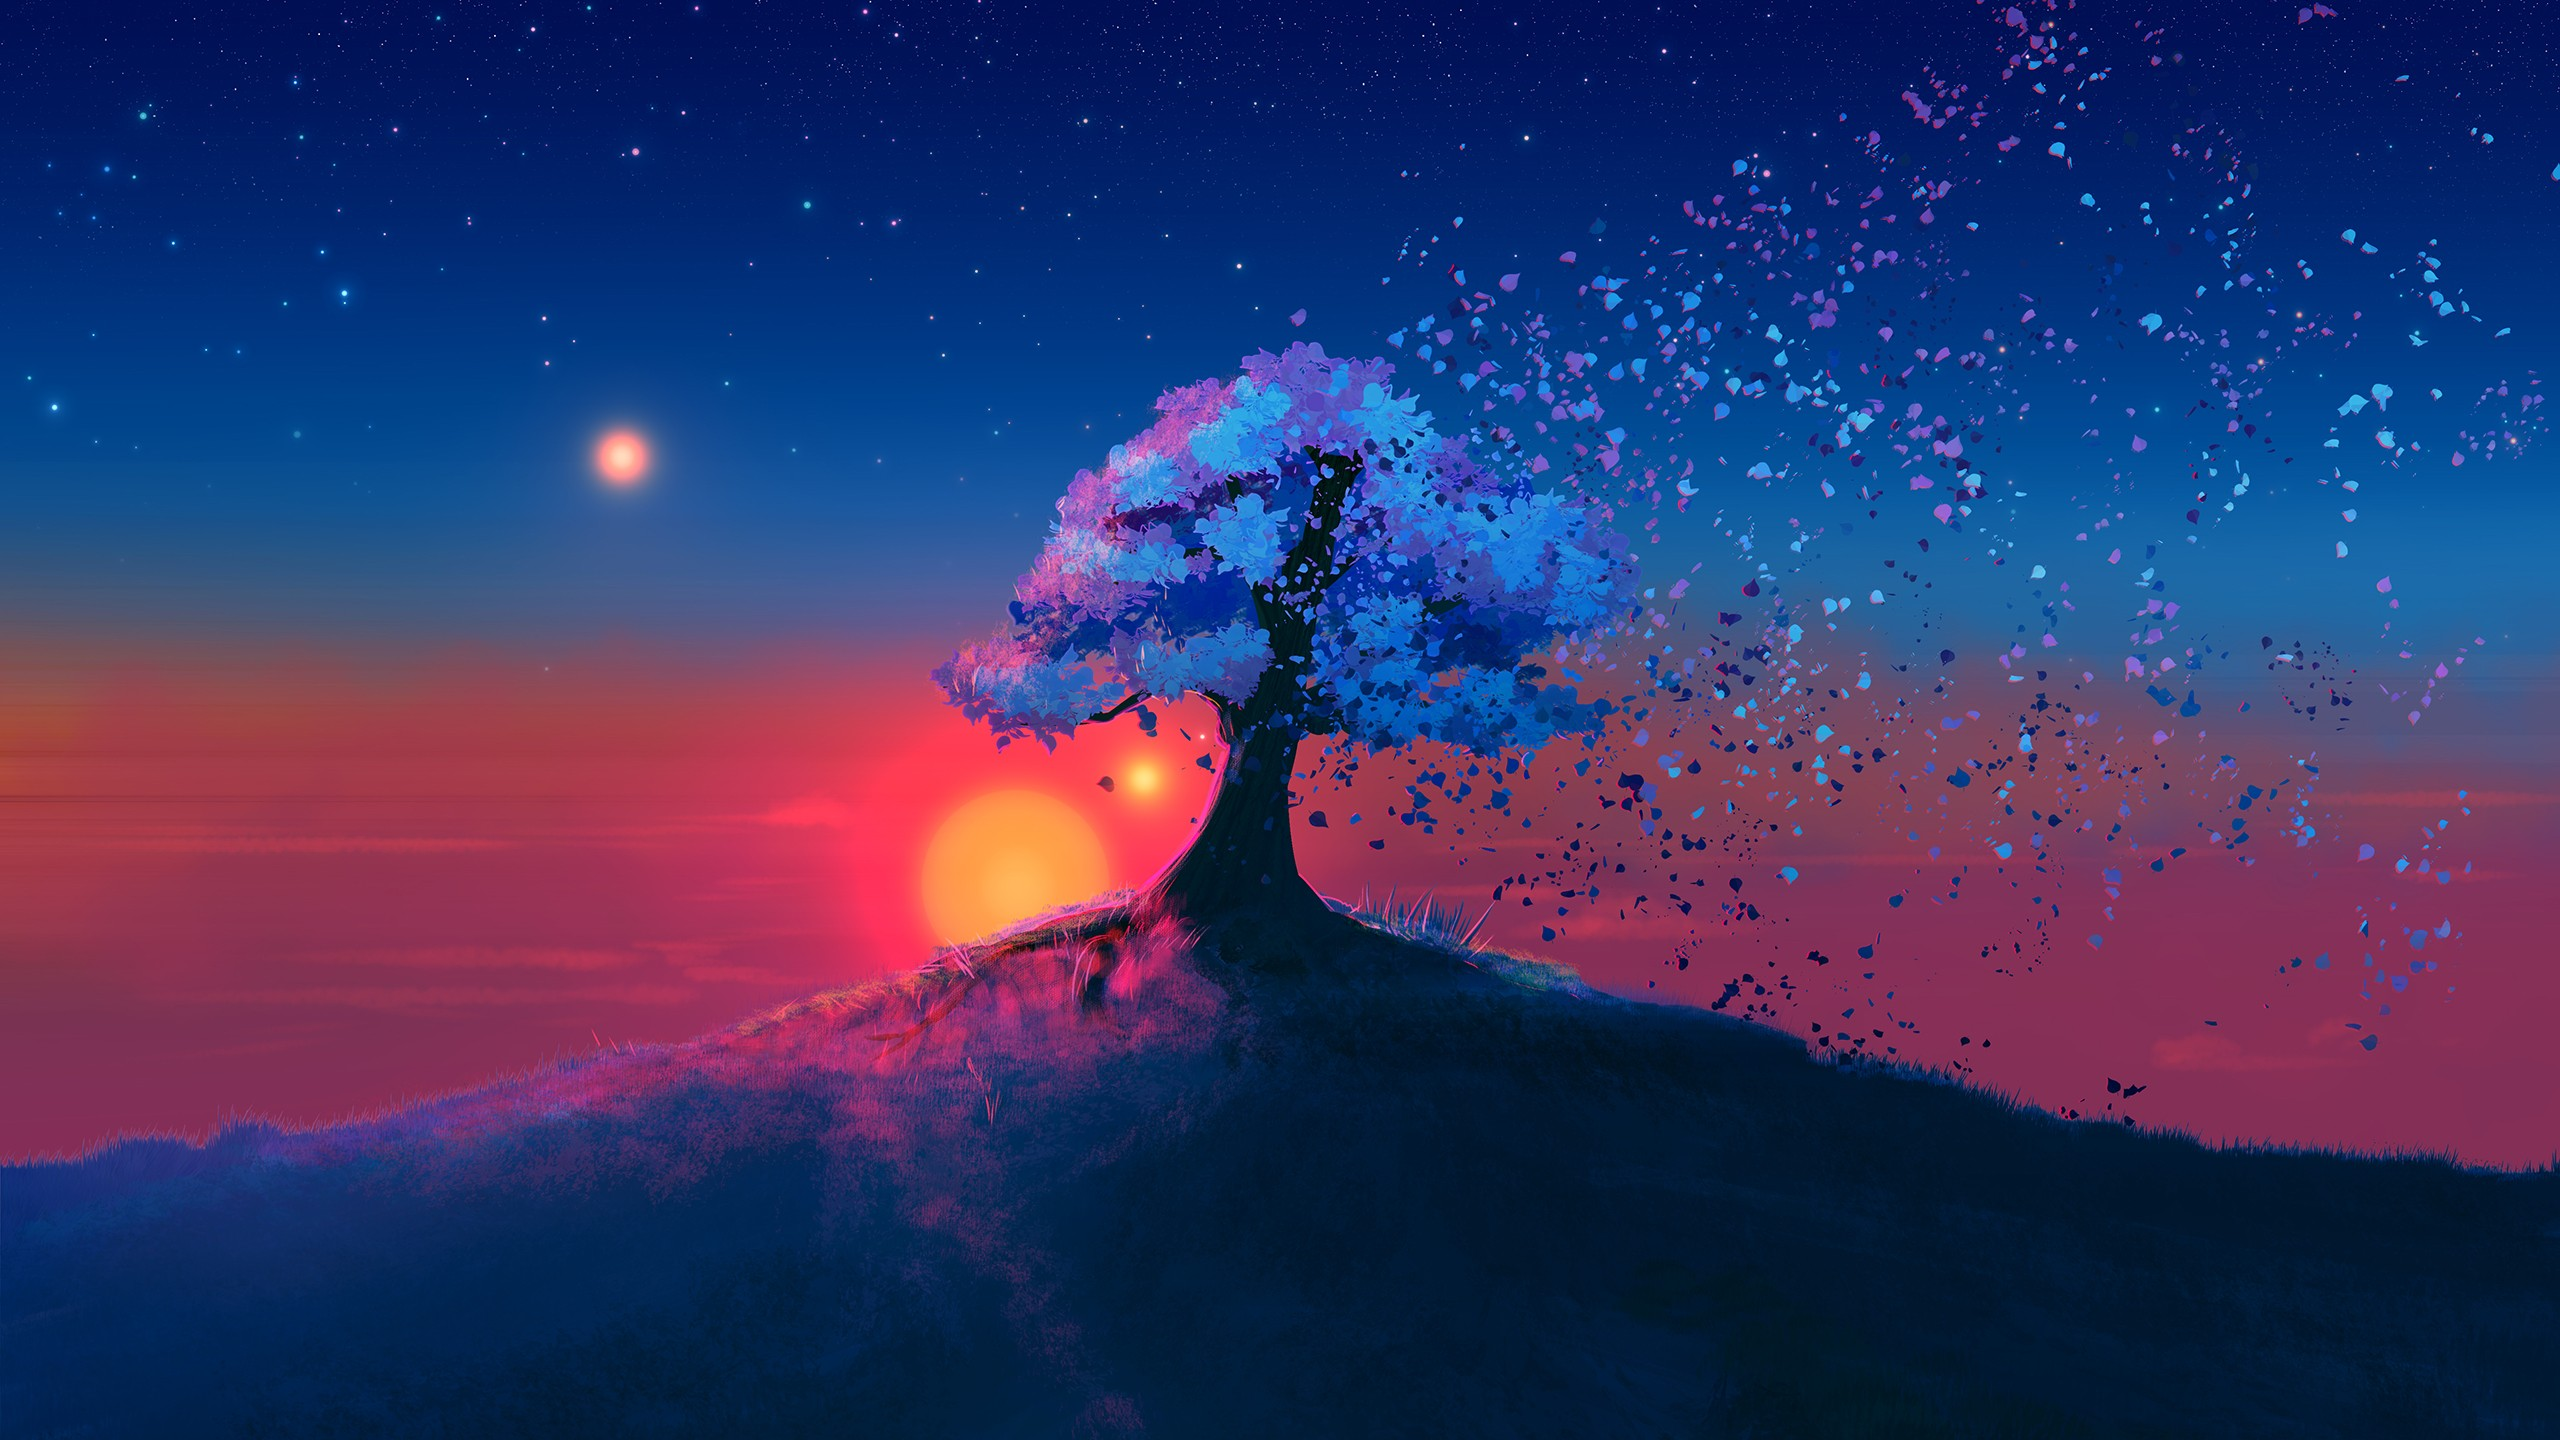 General 2560x1440 trees nature artwork digital art landscape sky stars JoeyJazz floating